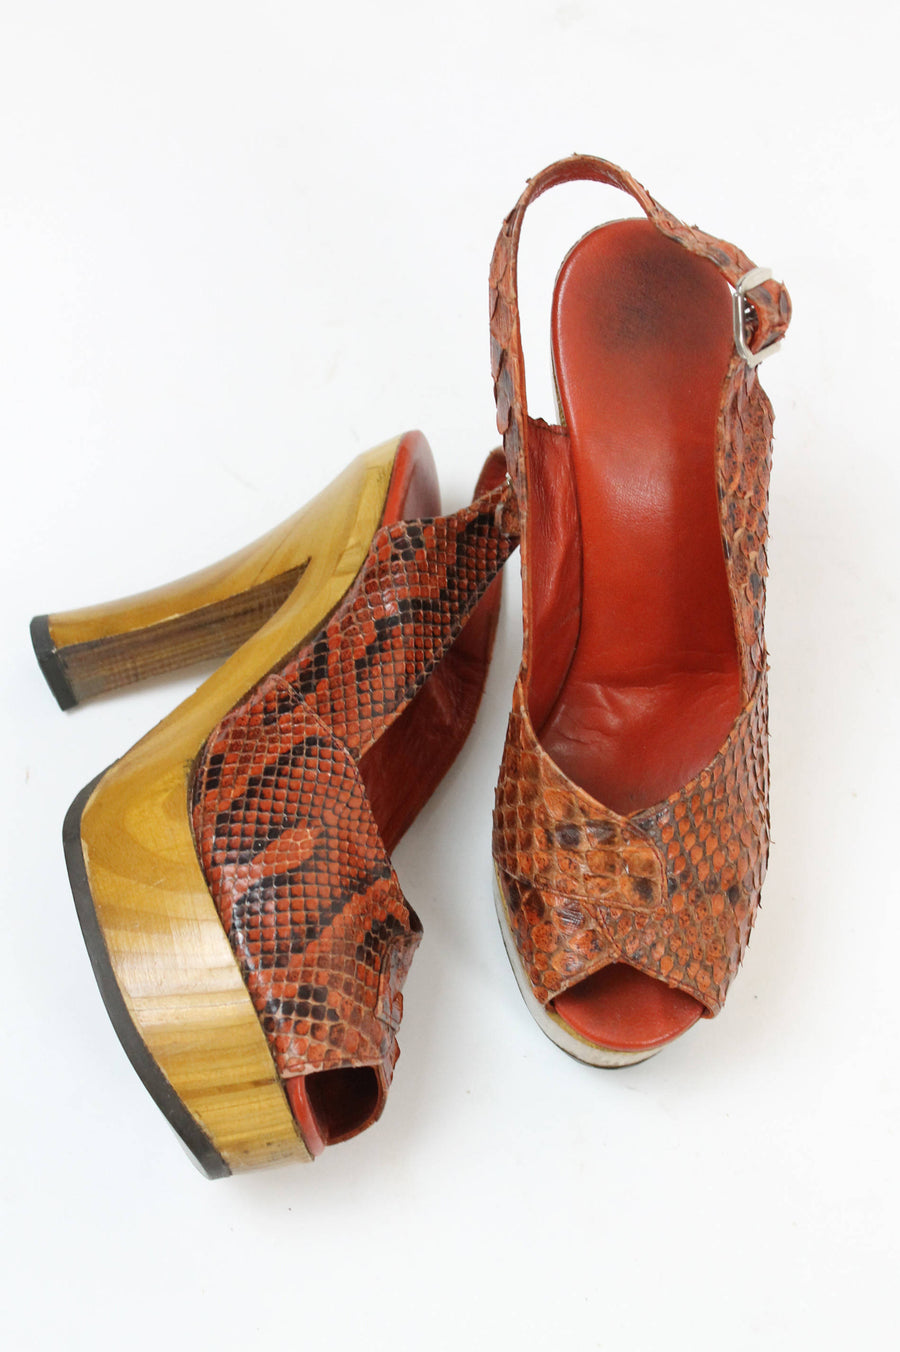 1970s snake wood platforms shoes Size 4.5 us | slingback peep toes